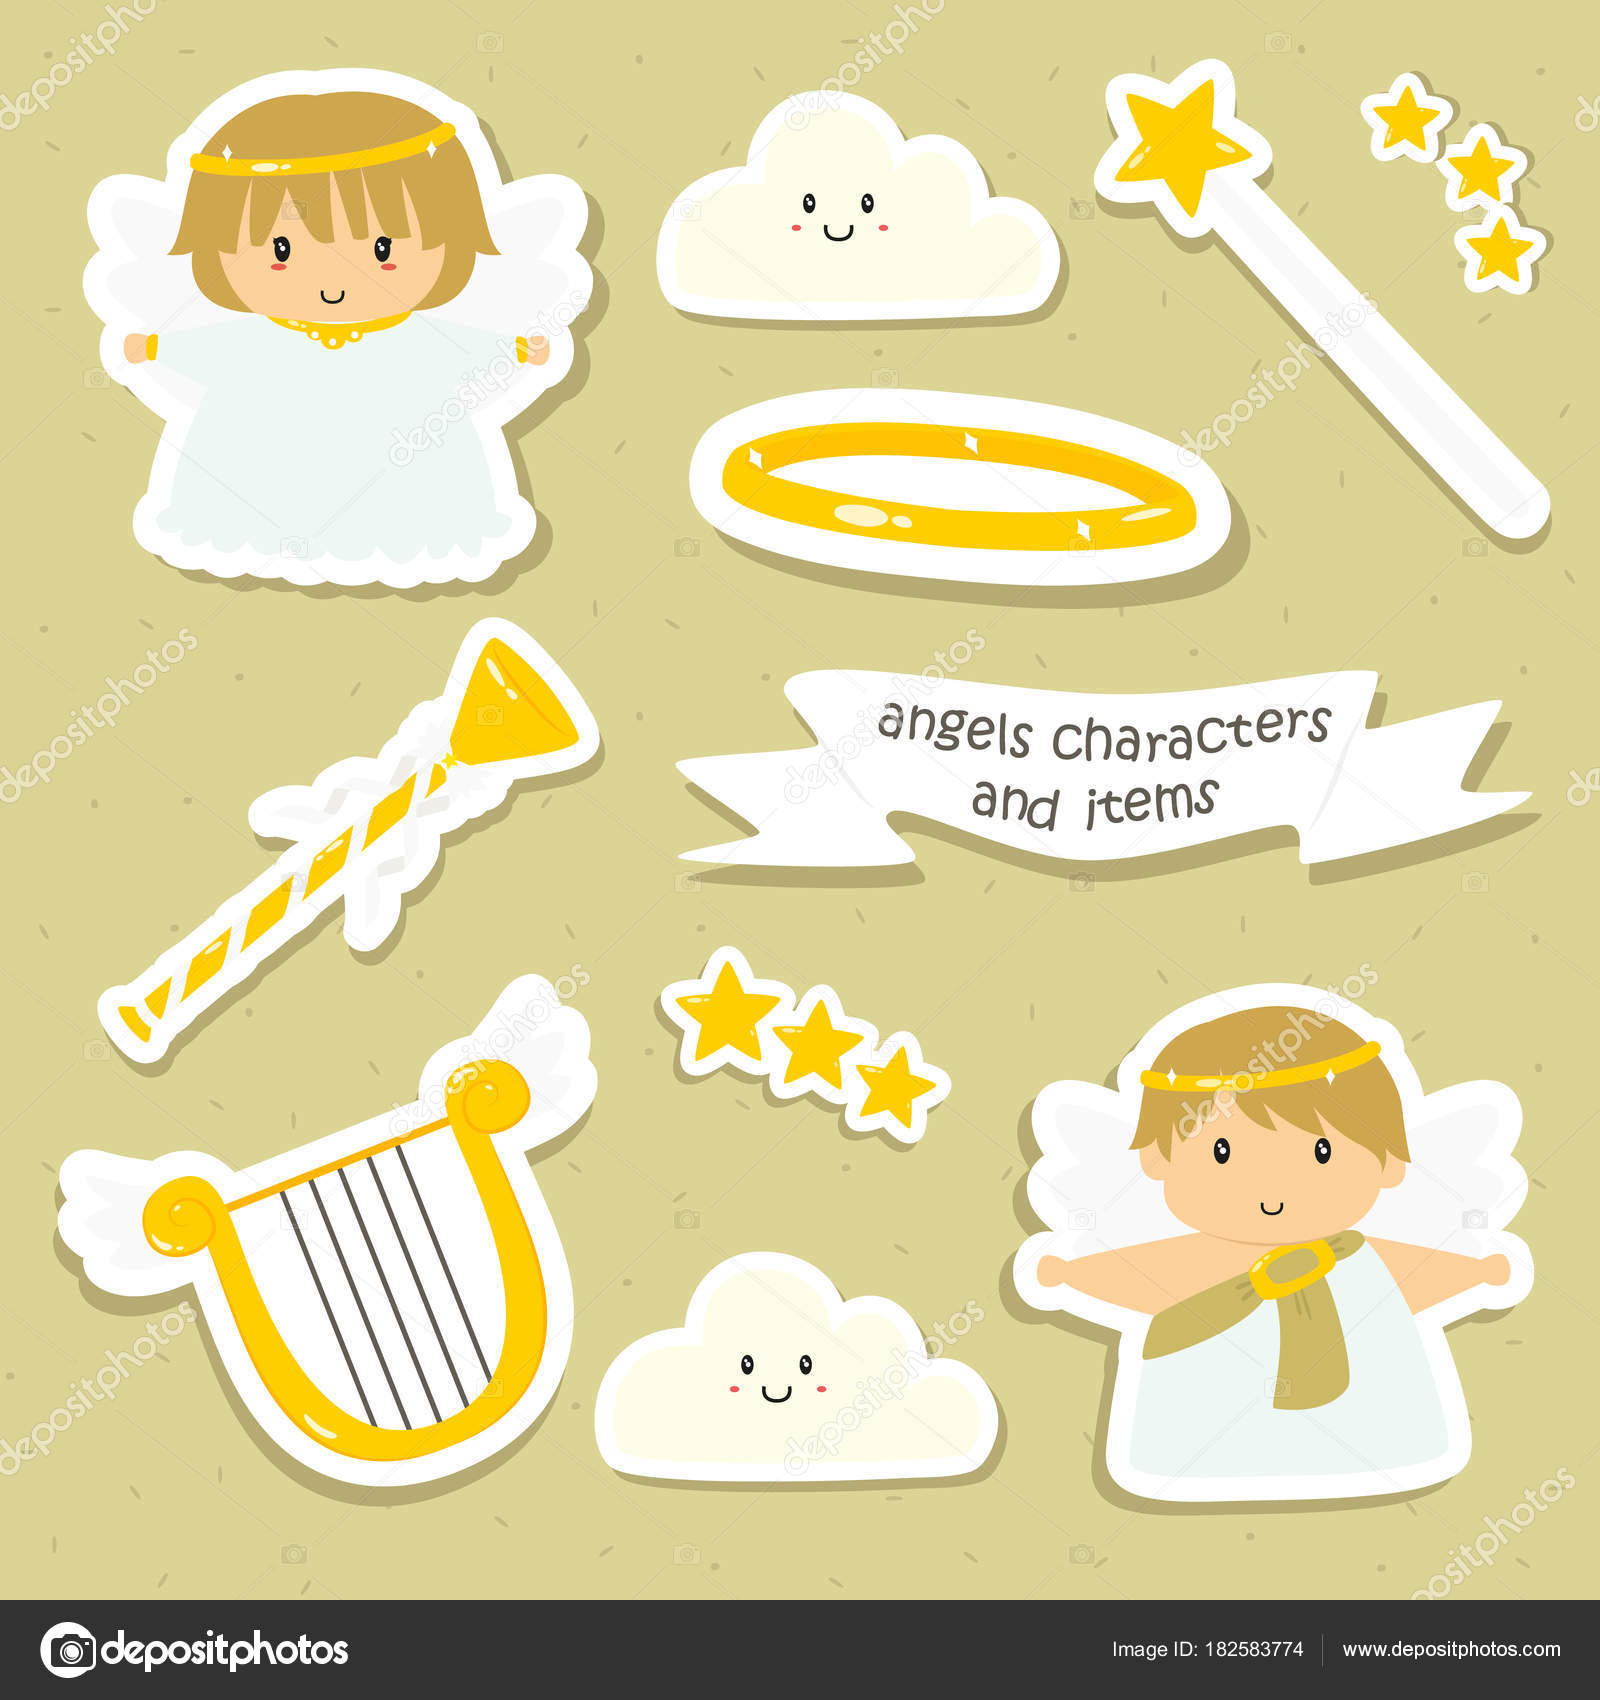 graphic about Cute Printable Stickers titled Illustrations or photos: printable cartoon Adorable Angels Merchandise Stickers Preset